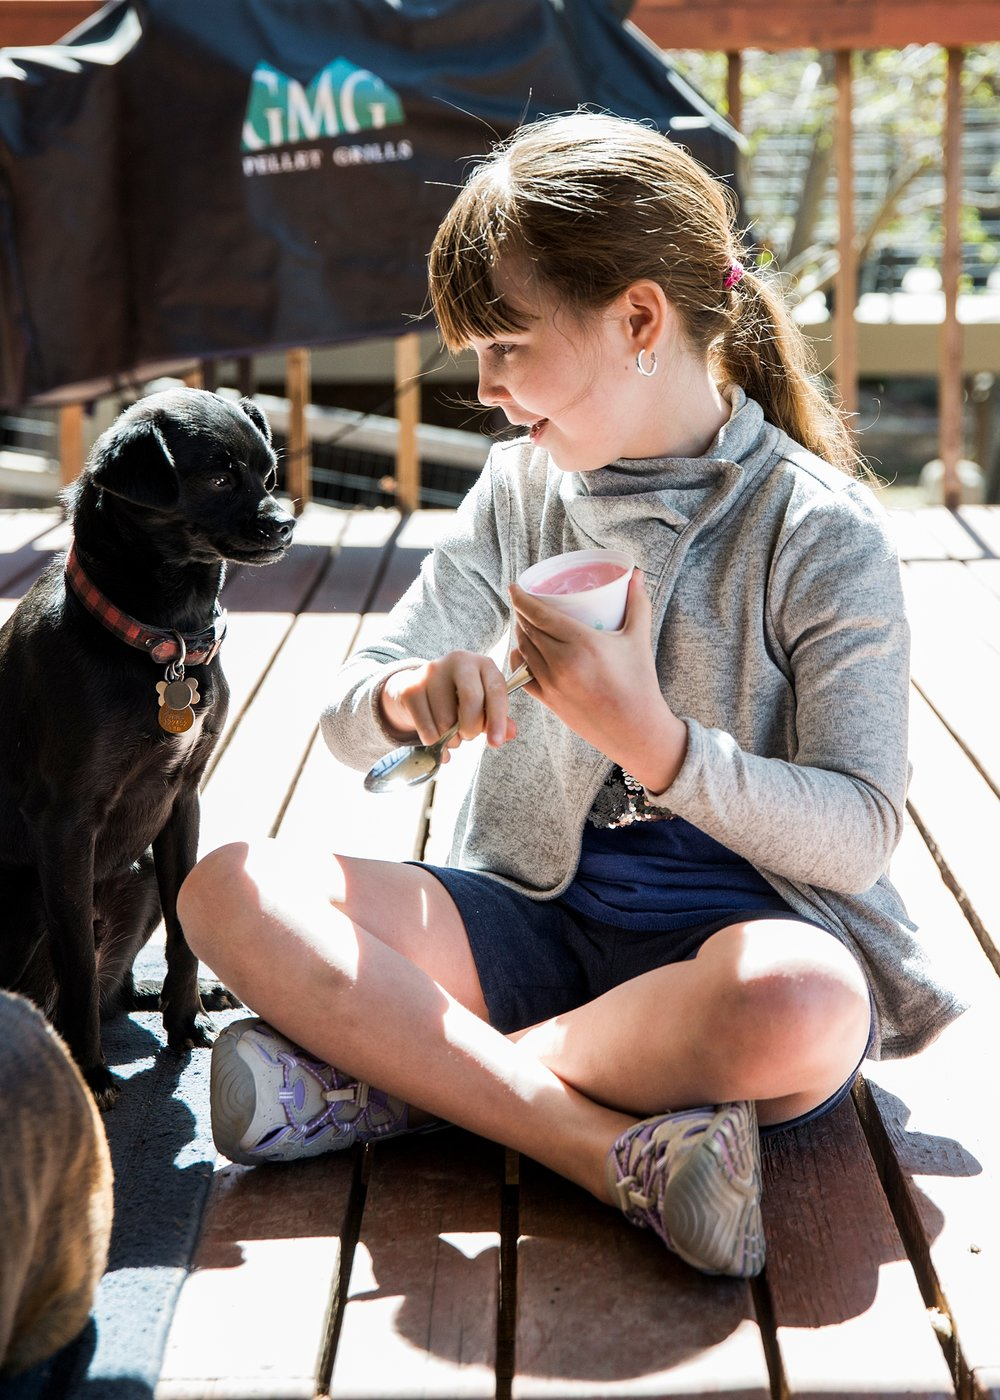 Unschooling curriculum includes lots of puppy love :) Our latest Week in the LIfe of an Unschooler is up on the blog!